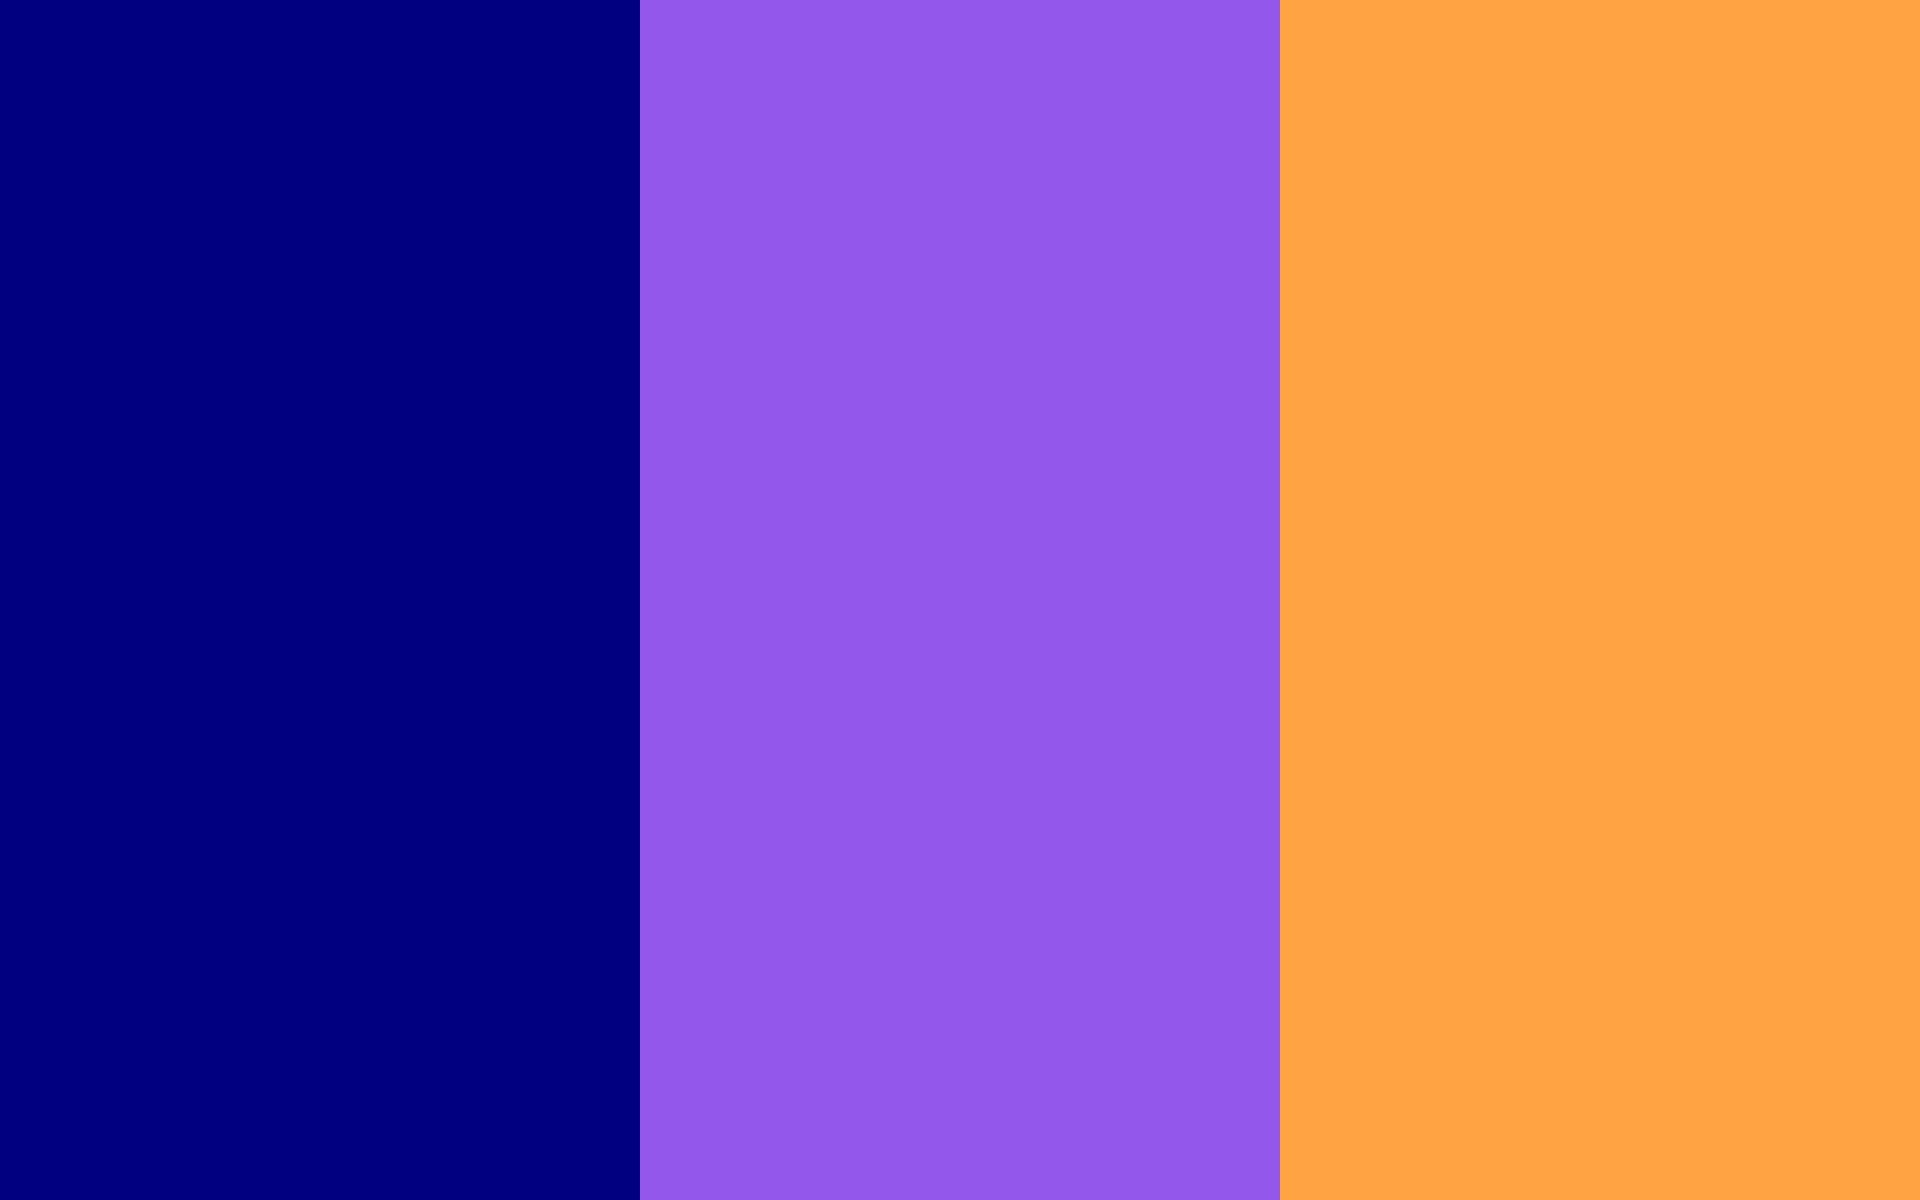 Navy Blue, Navy Purple and Neon Carrot solid three color background .